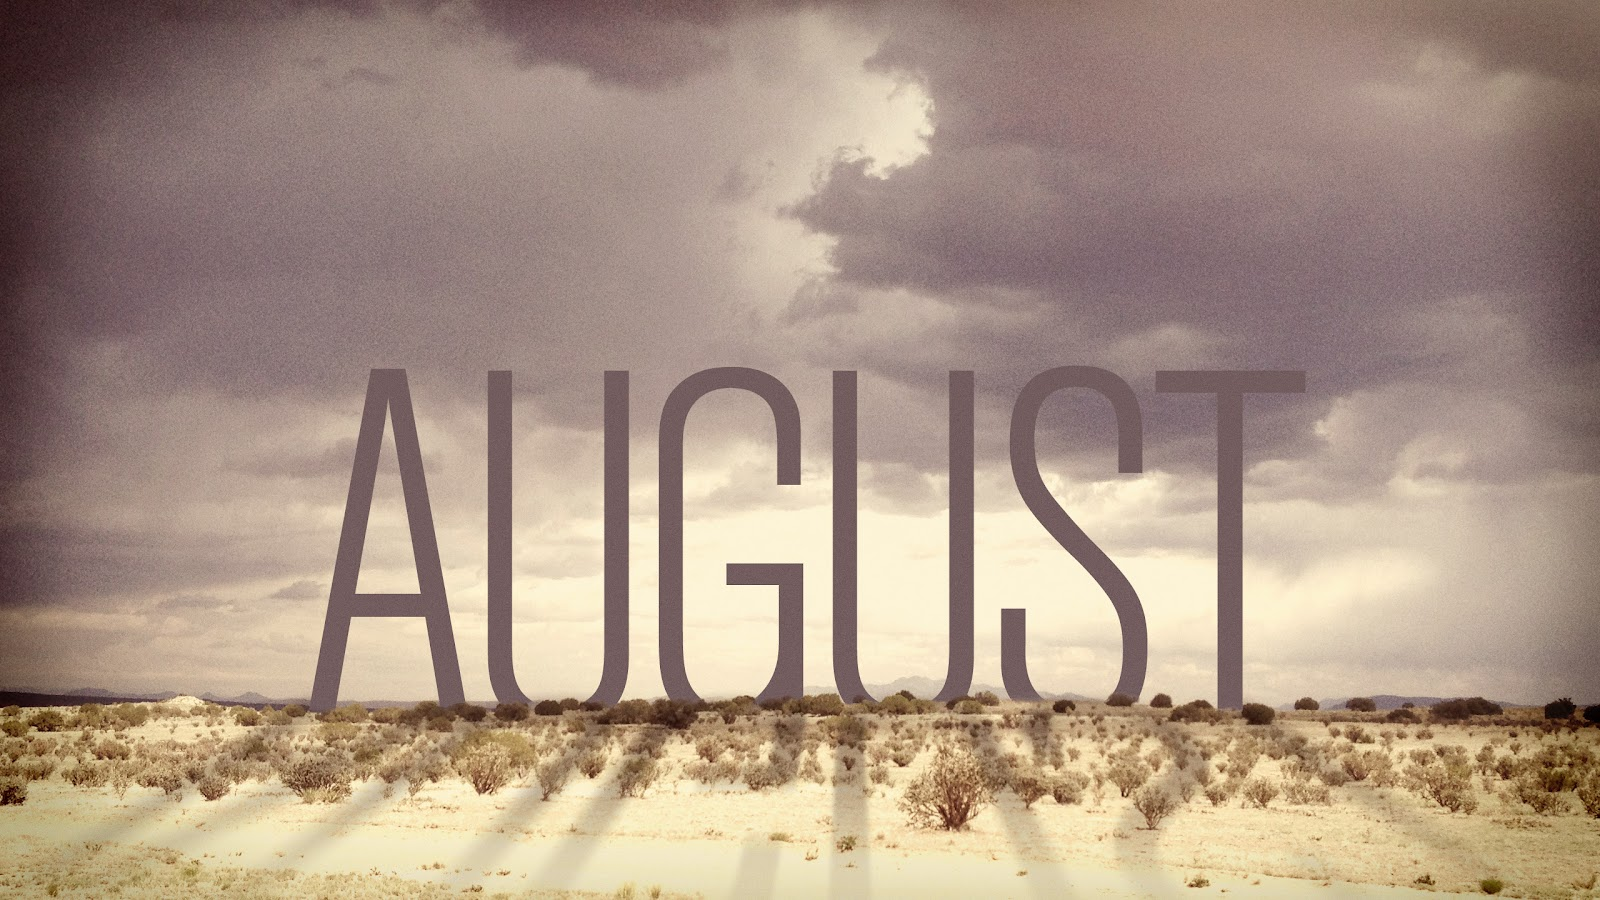 Happy August Birthday Wishes   August Birthday Greetings